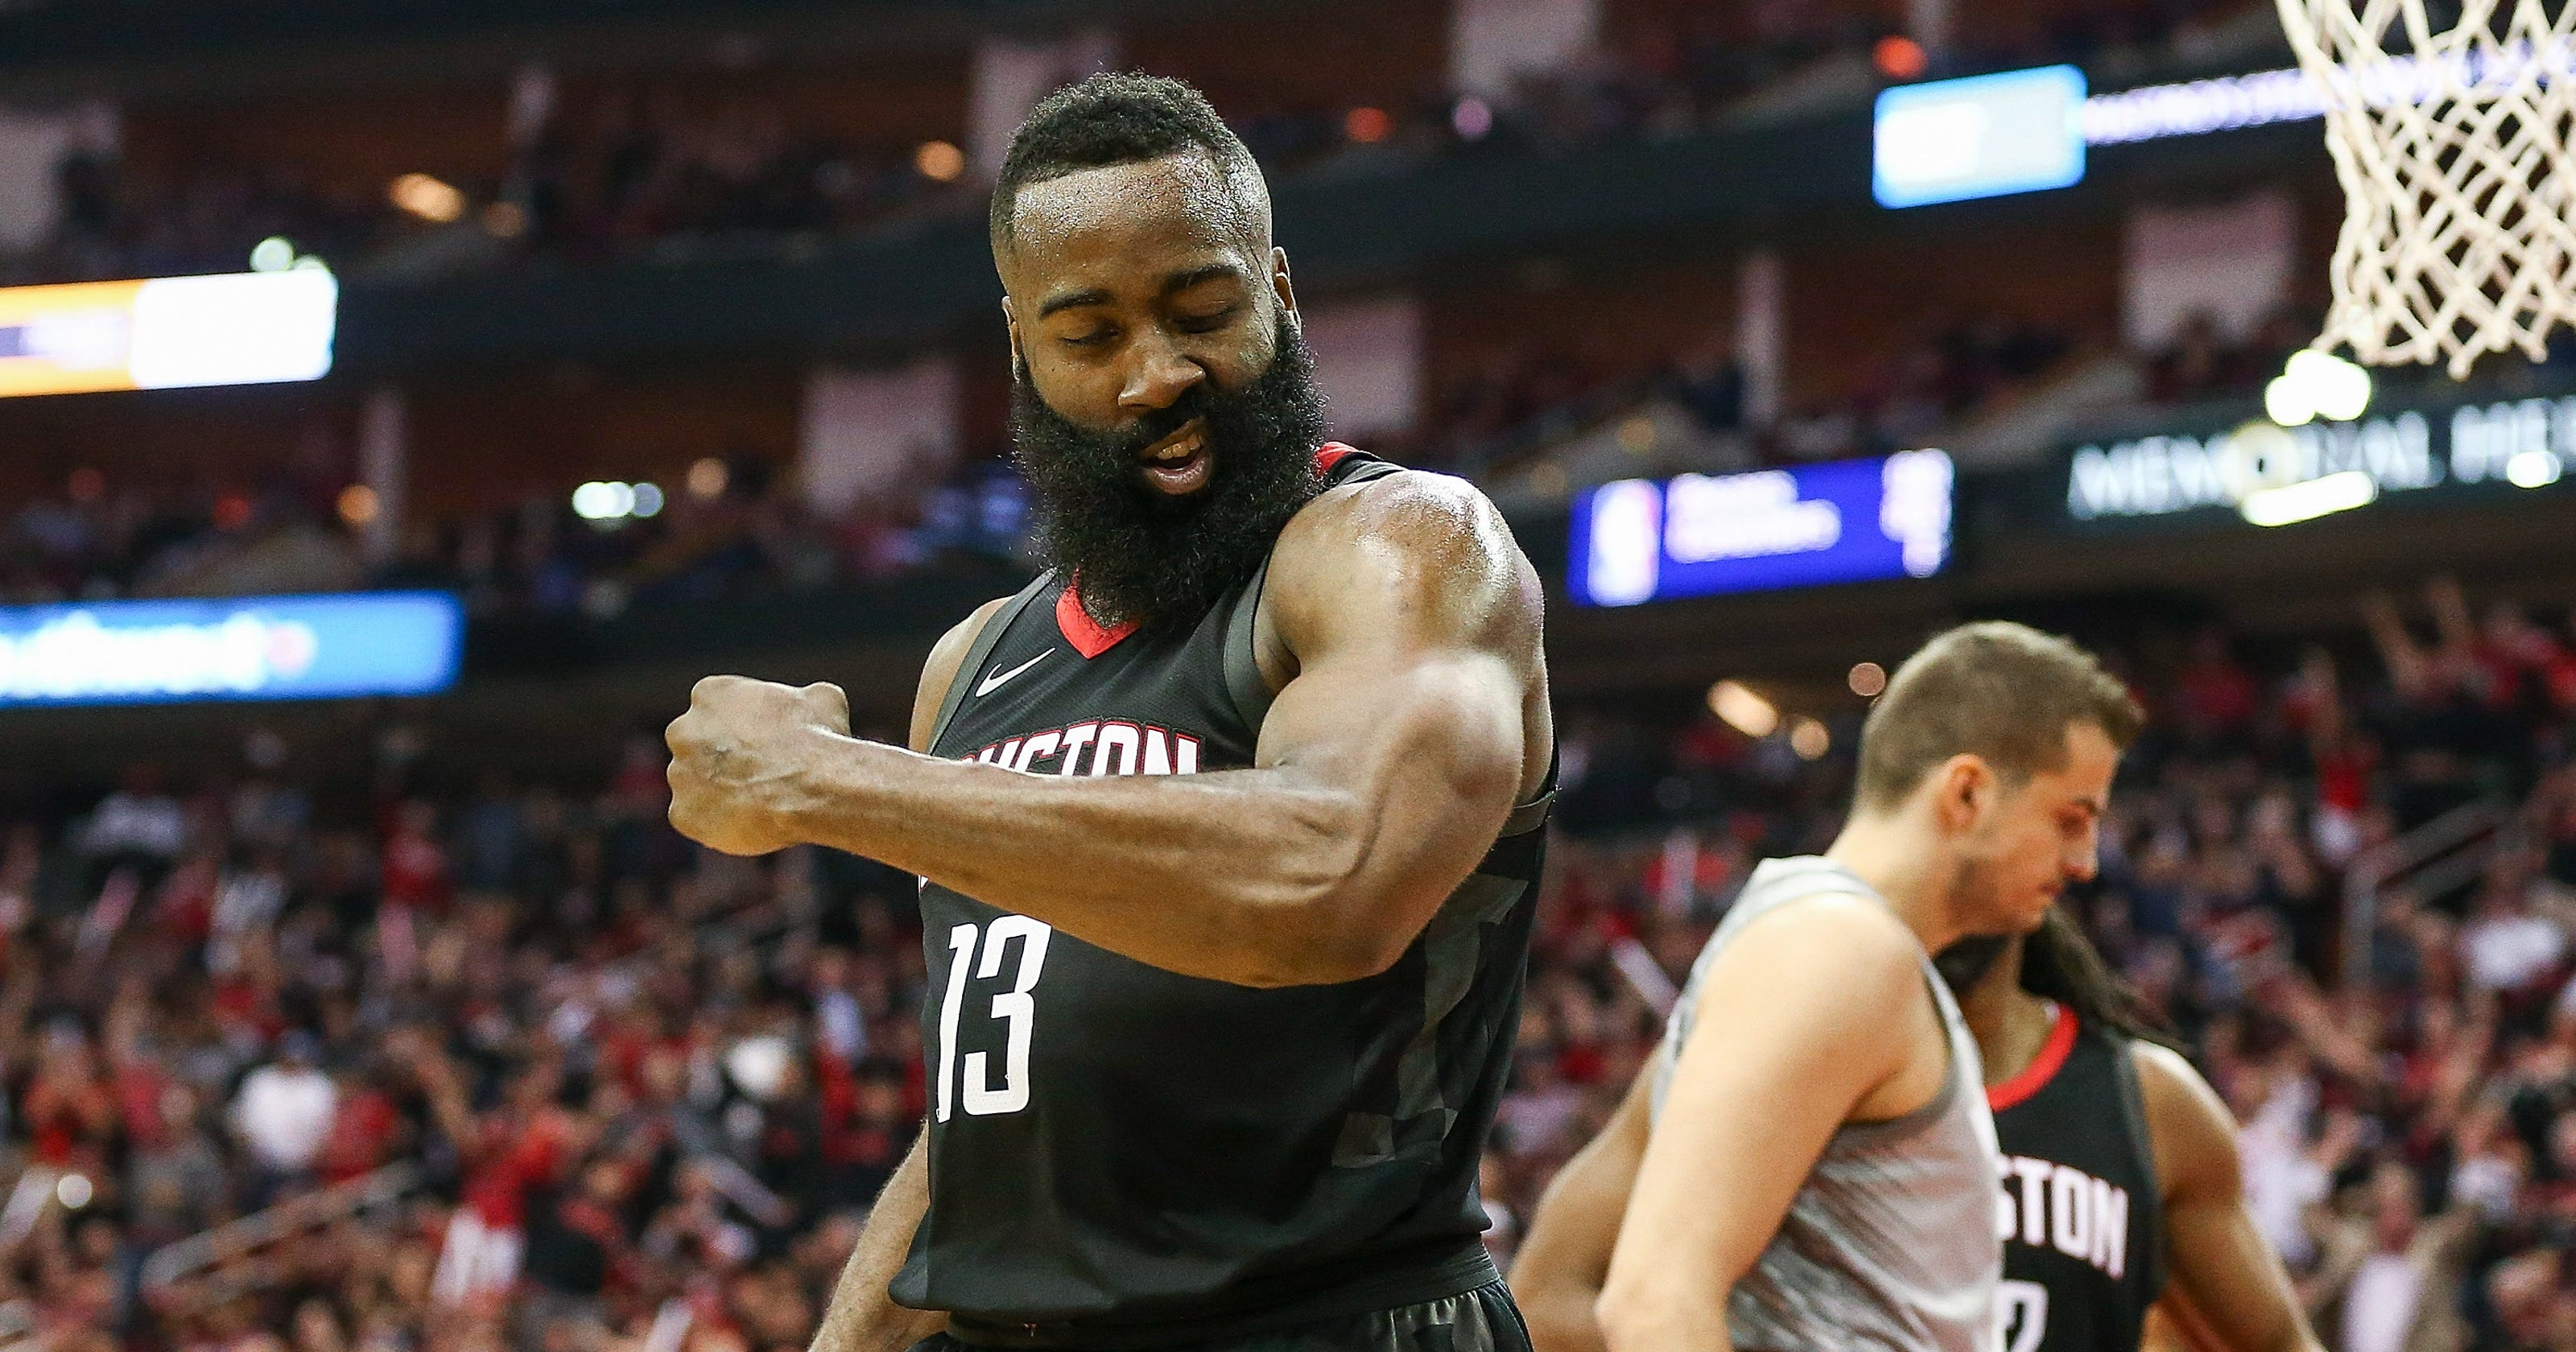 d6a456c66340 James Harden s 44 points lifts Rockets past Timberwolves in Game 1